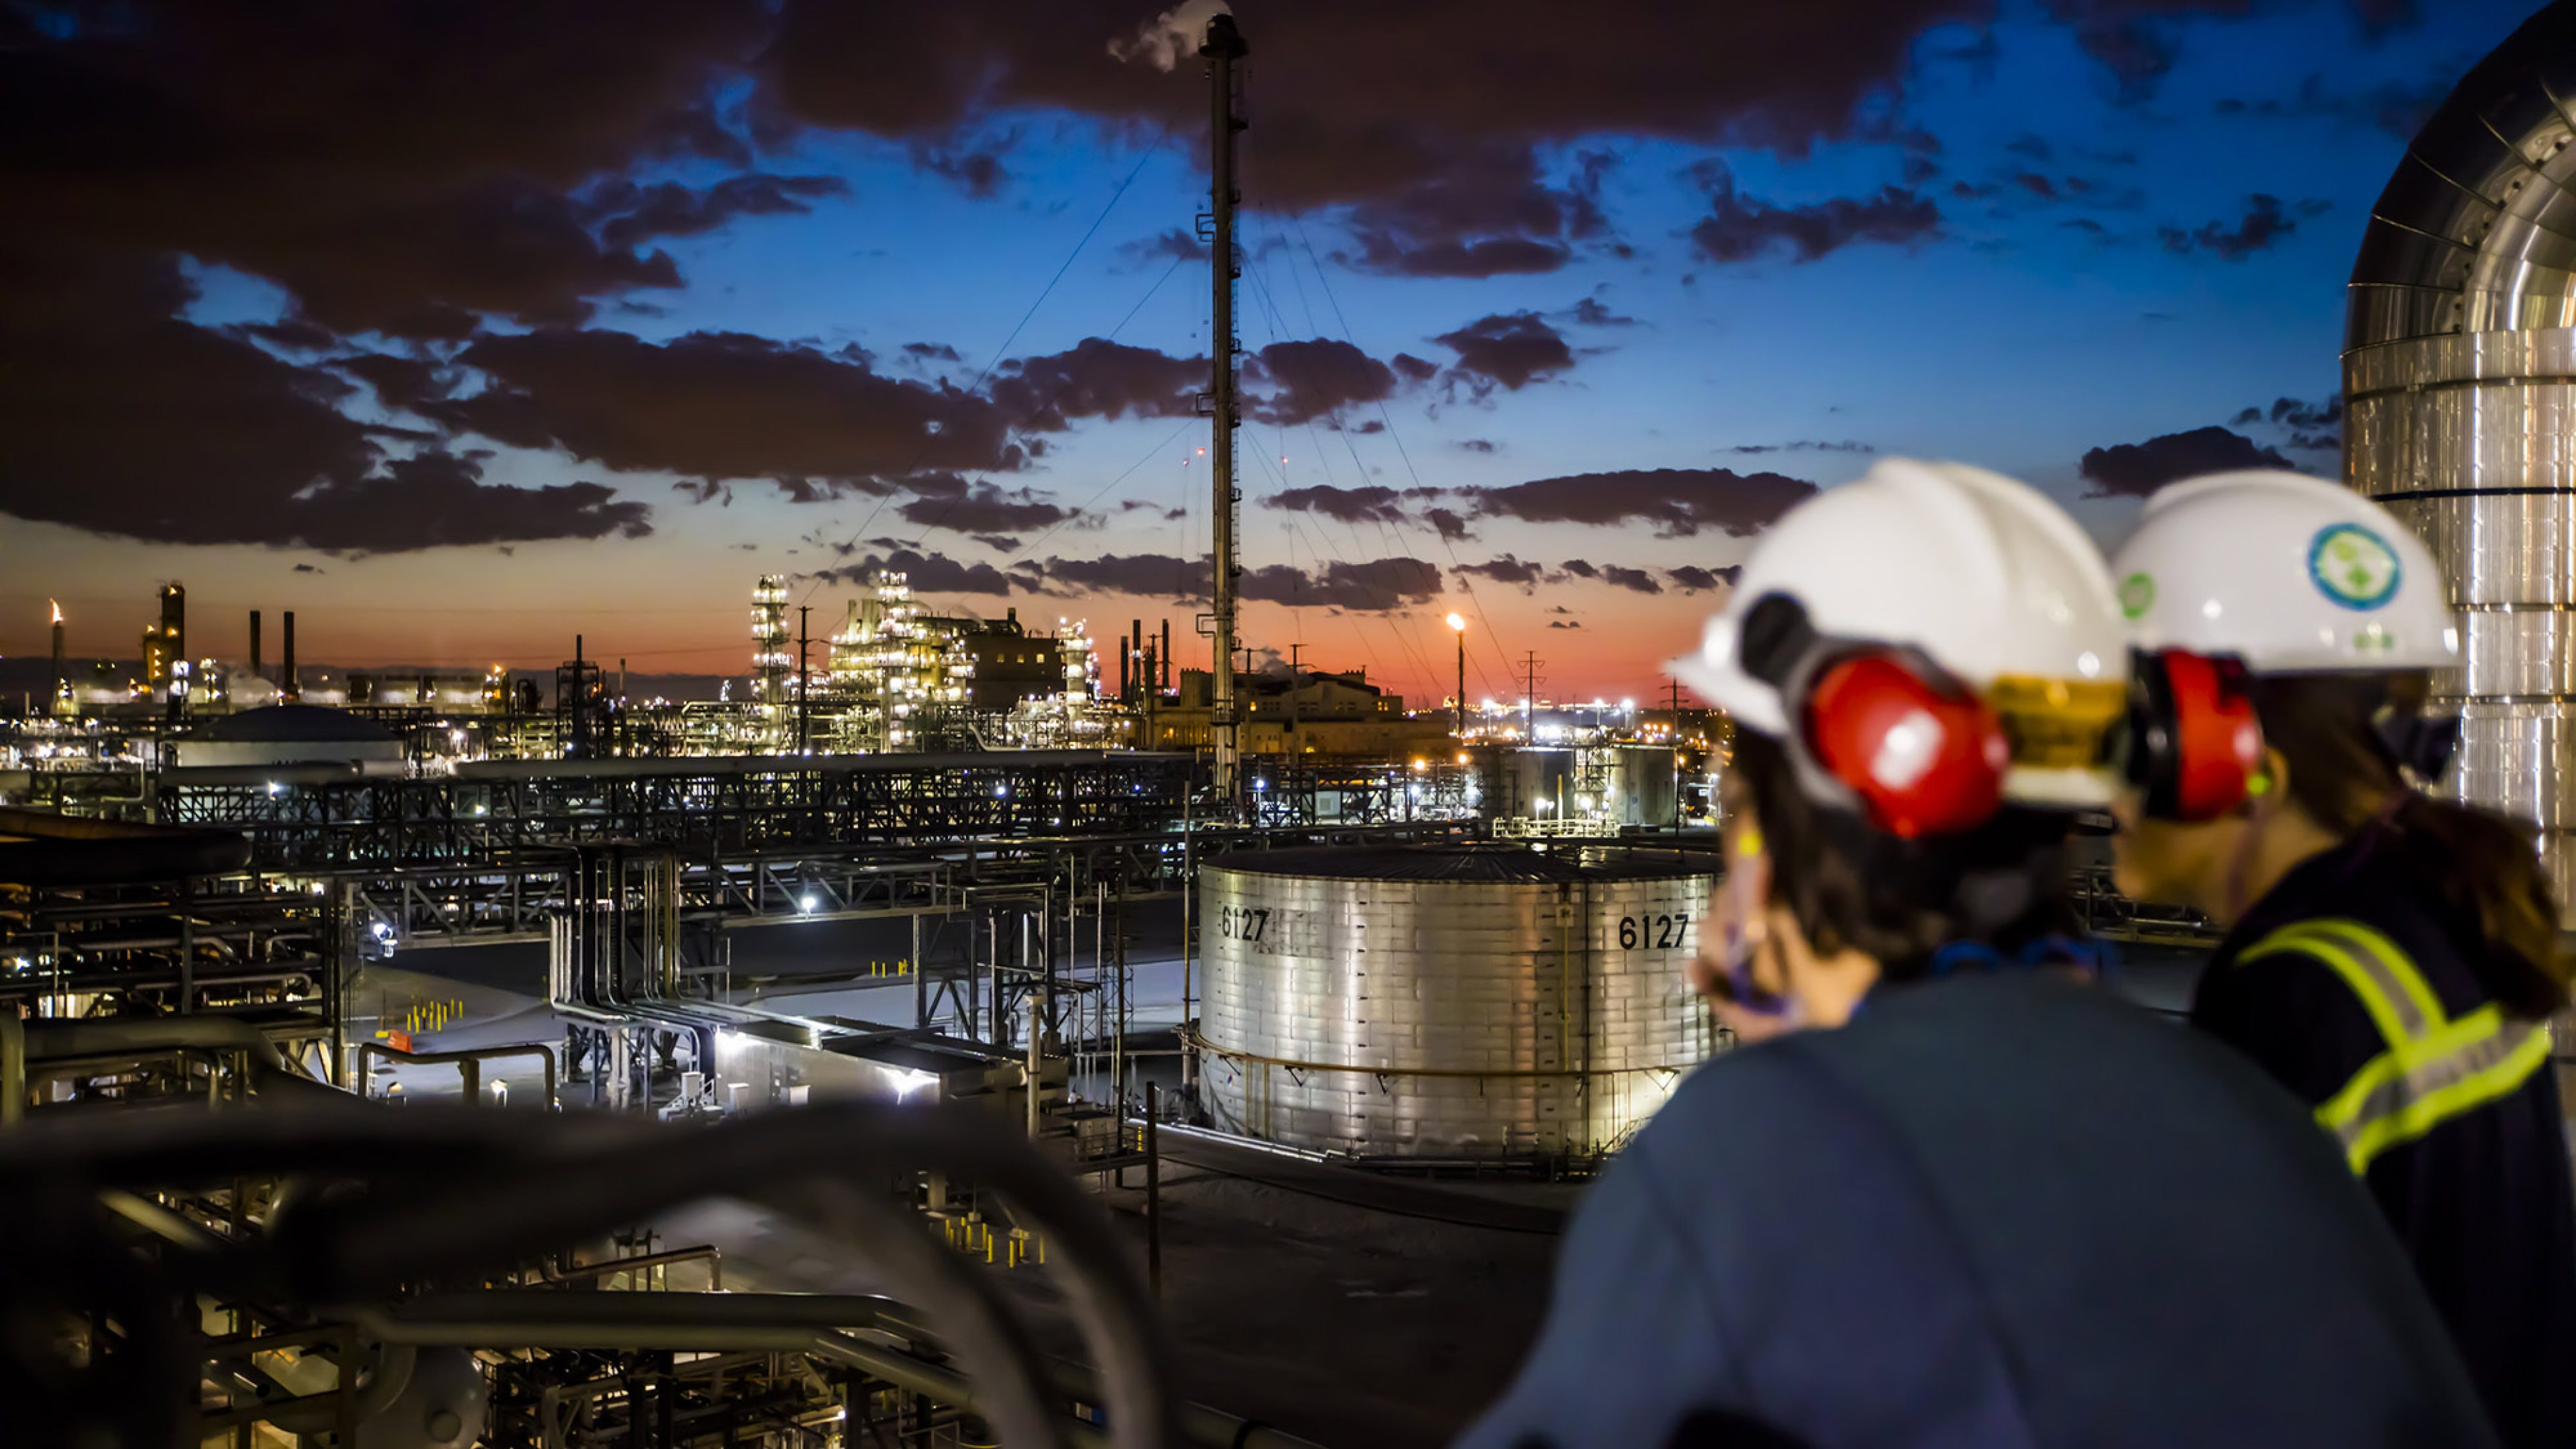 Operators look across BPs Whiting Refinery in Indiana, US, at sunset